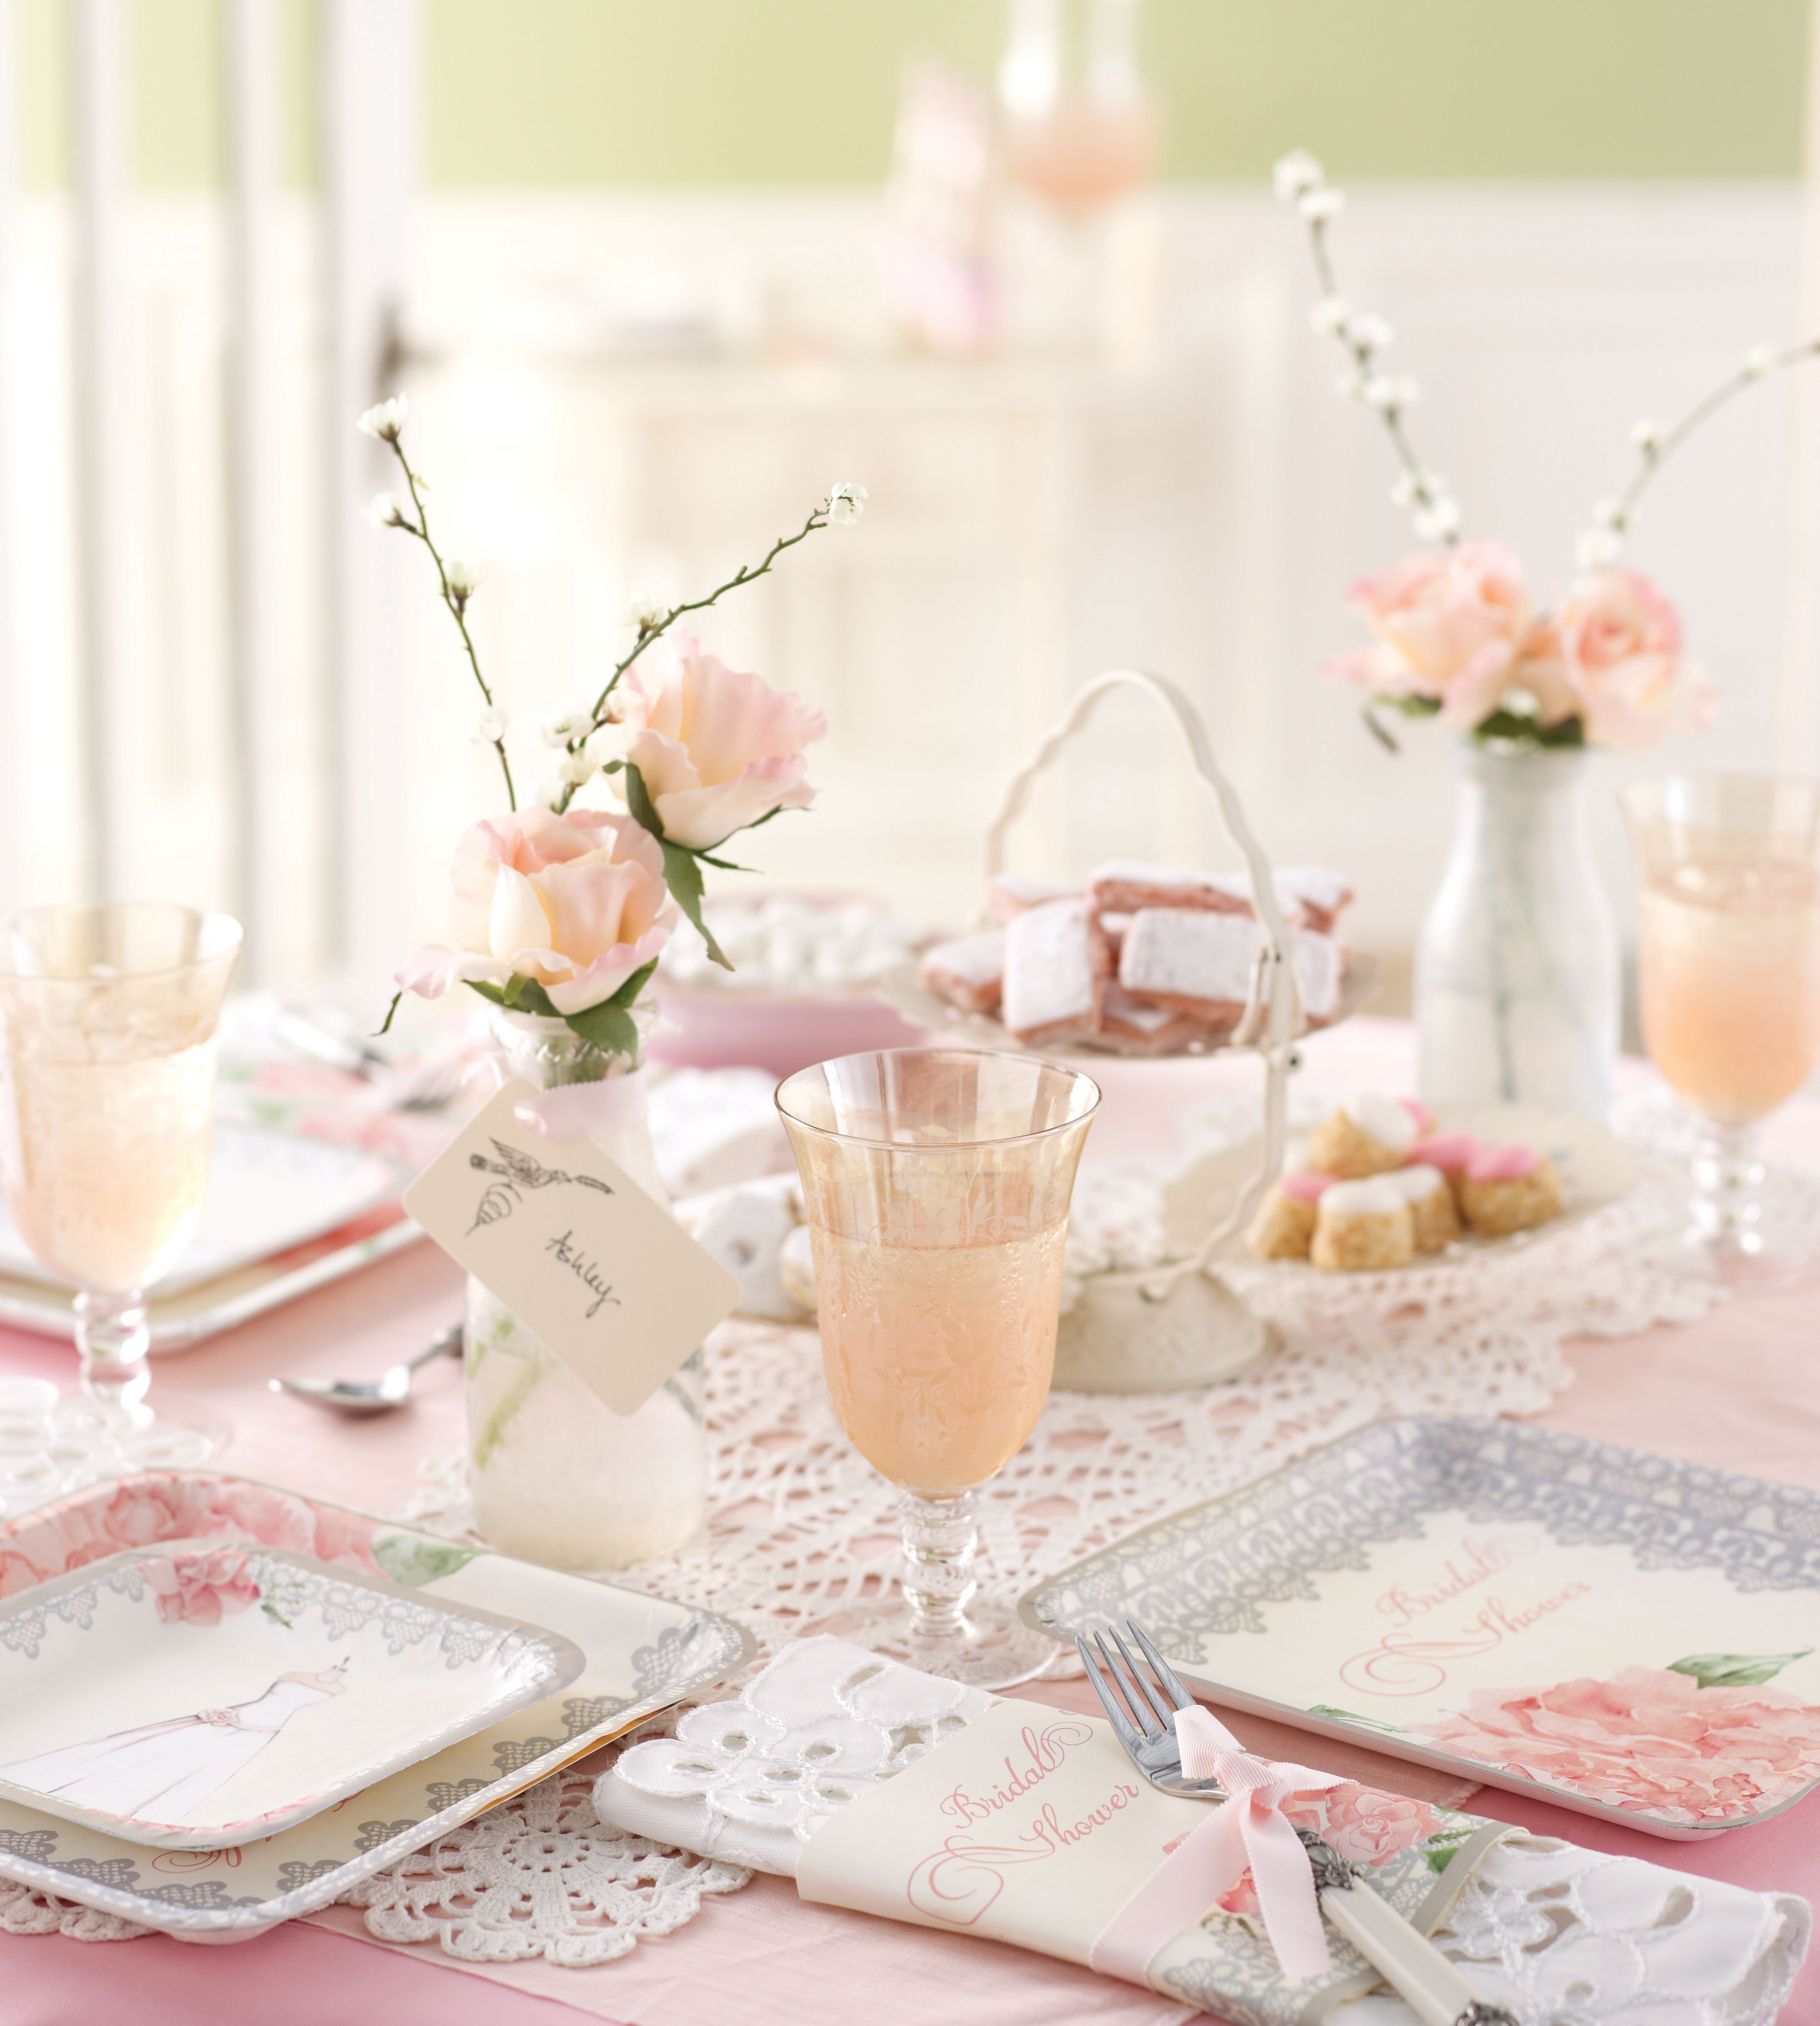 Tabletop For Bridal Shower